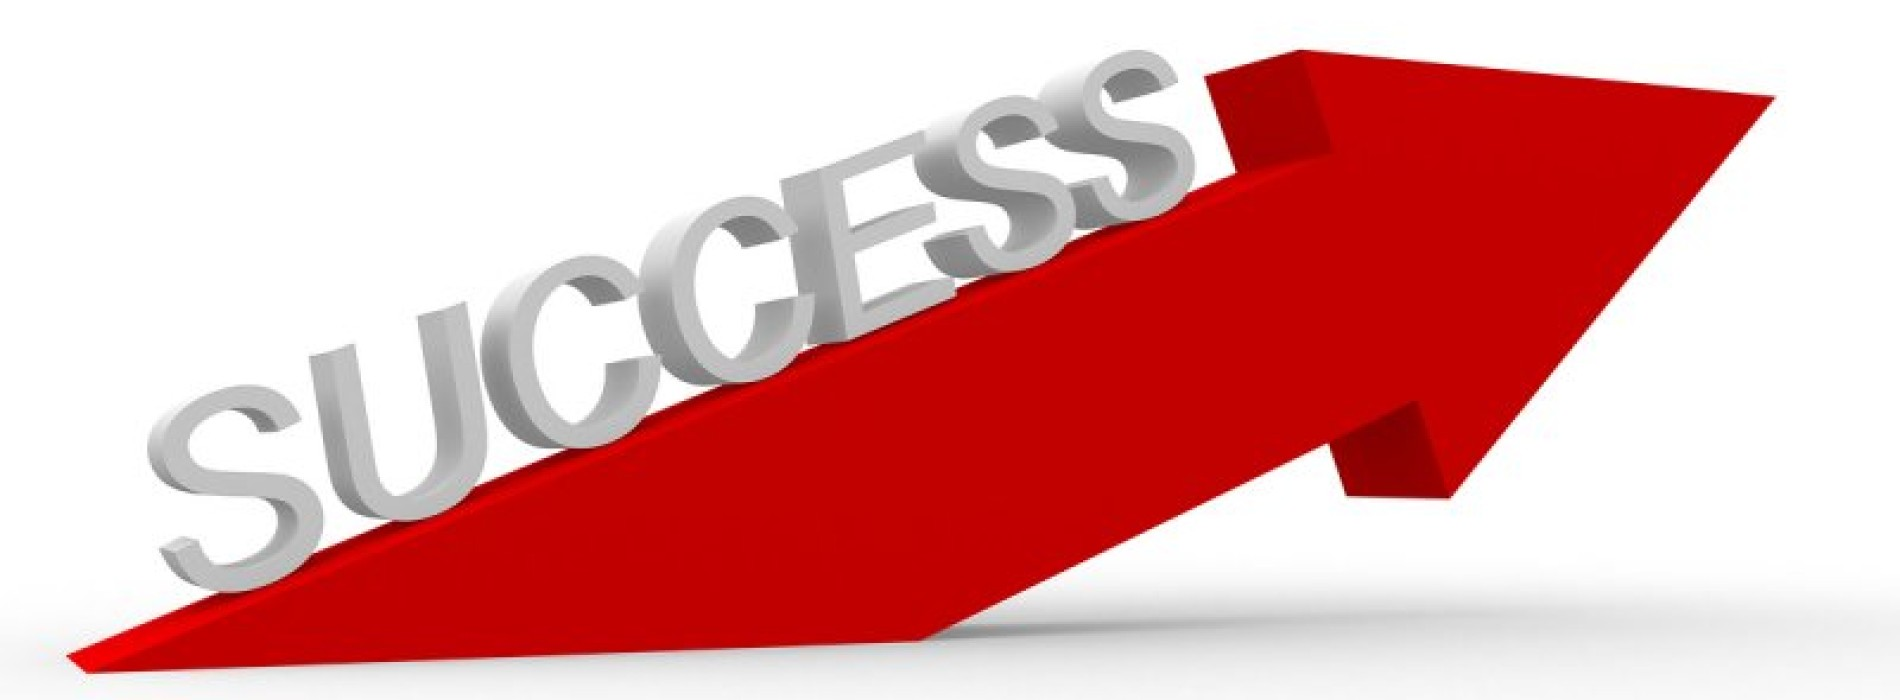 Challenges and success: starting a business with a disability